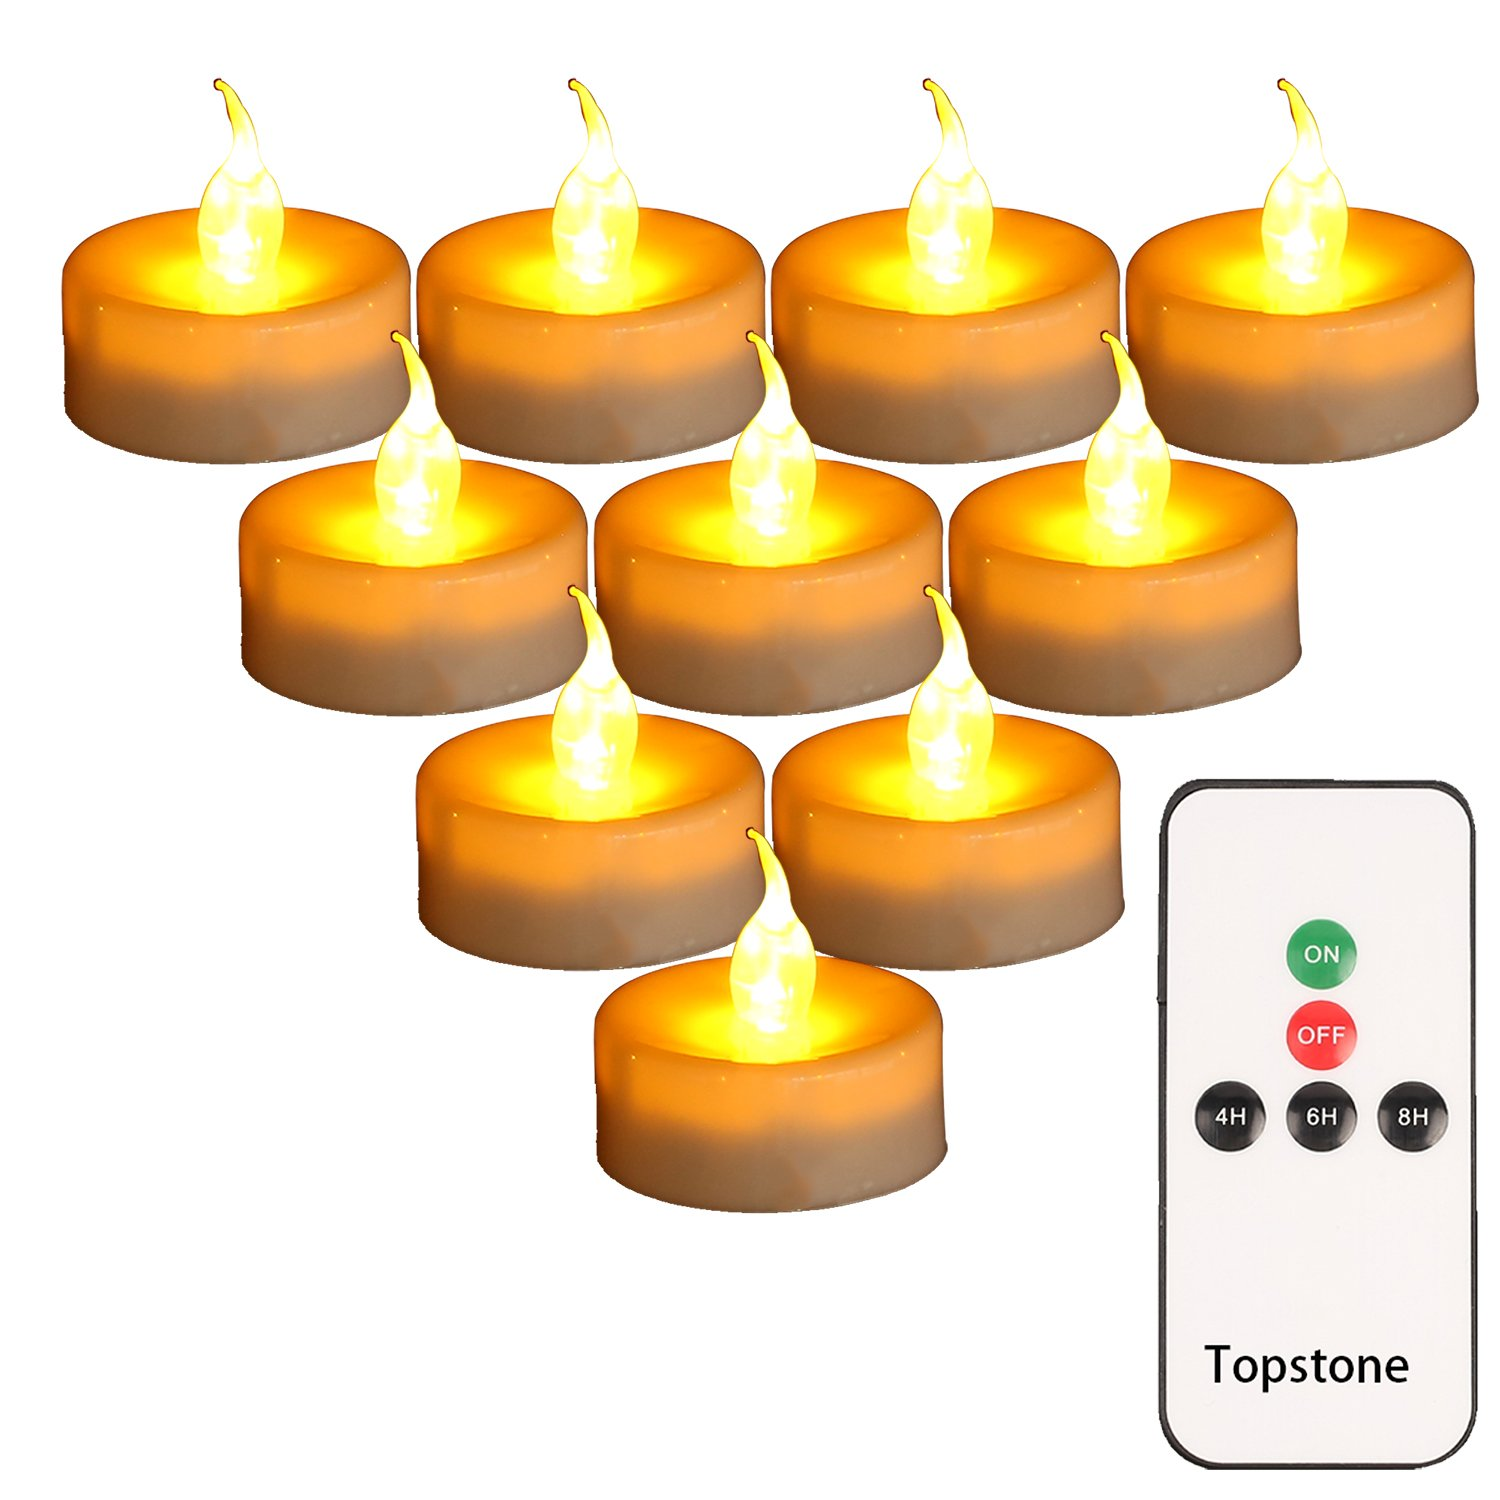 Topstone Pack of 24 LED Tealight Candles Powered by Long Lasting CR2450 Battery,Realistic Amber Flickering Bulb,Fake Candles with Remote Control and 4H 6H 8H Timer for Seasonal &Festival Celebration by Topstone